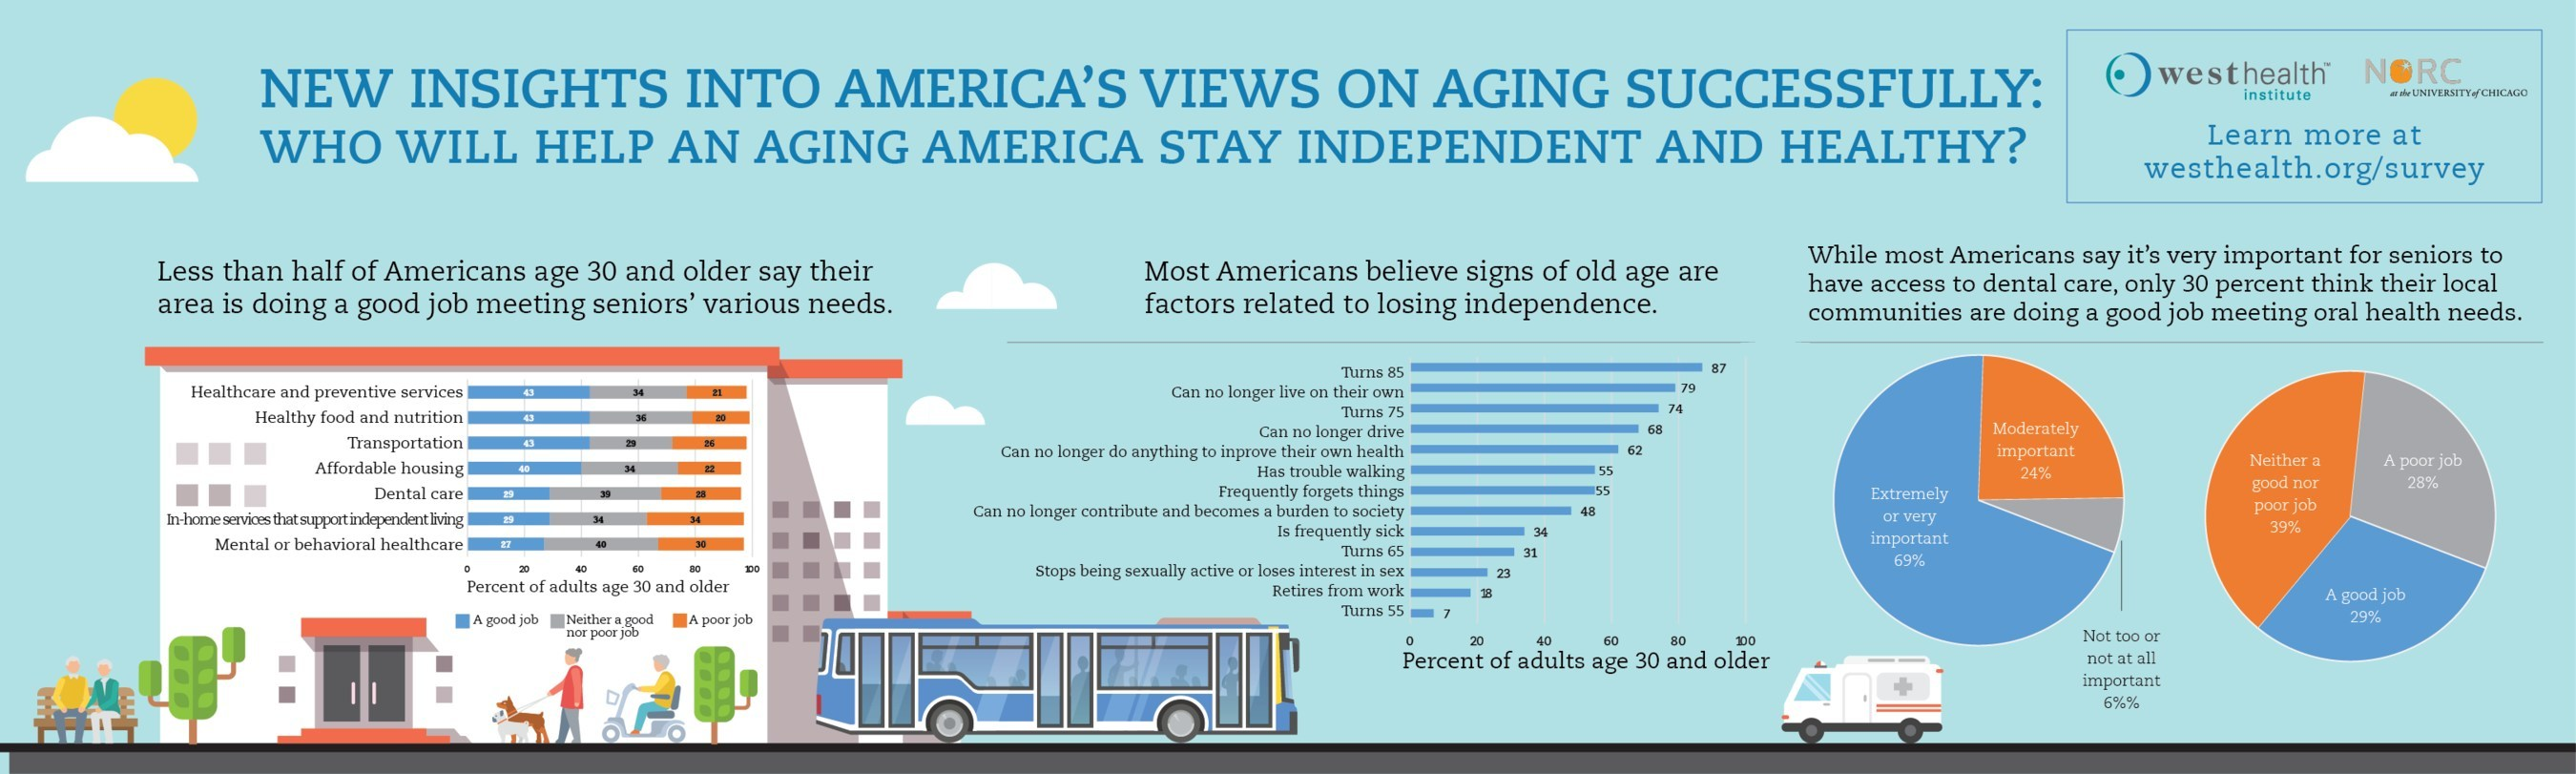 See this infographic of information from the West Health Institute/NORC Survey on Aging in America, a survey of more than 3,000 adults conducted to contribute to the understanding of people's hopes, fears and perceptions of aging during each decade of life after 30, conducted by NORC at the University of Chicago. Learn more about the survey and its findings at westhealth.org/survey.